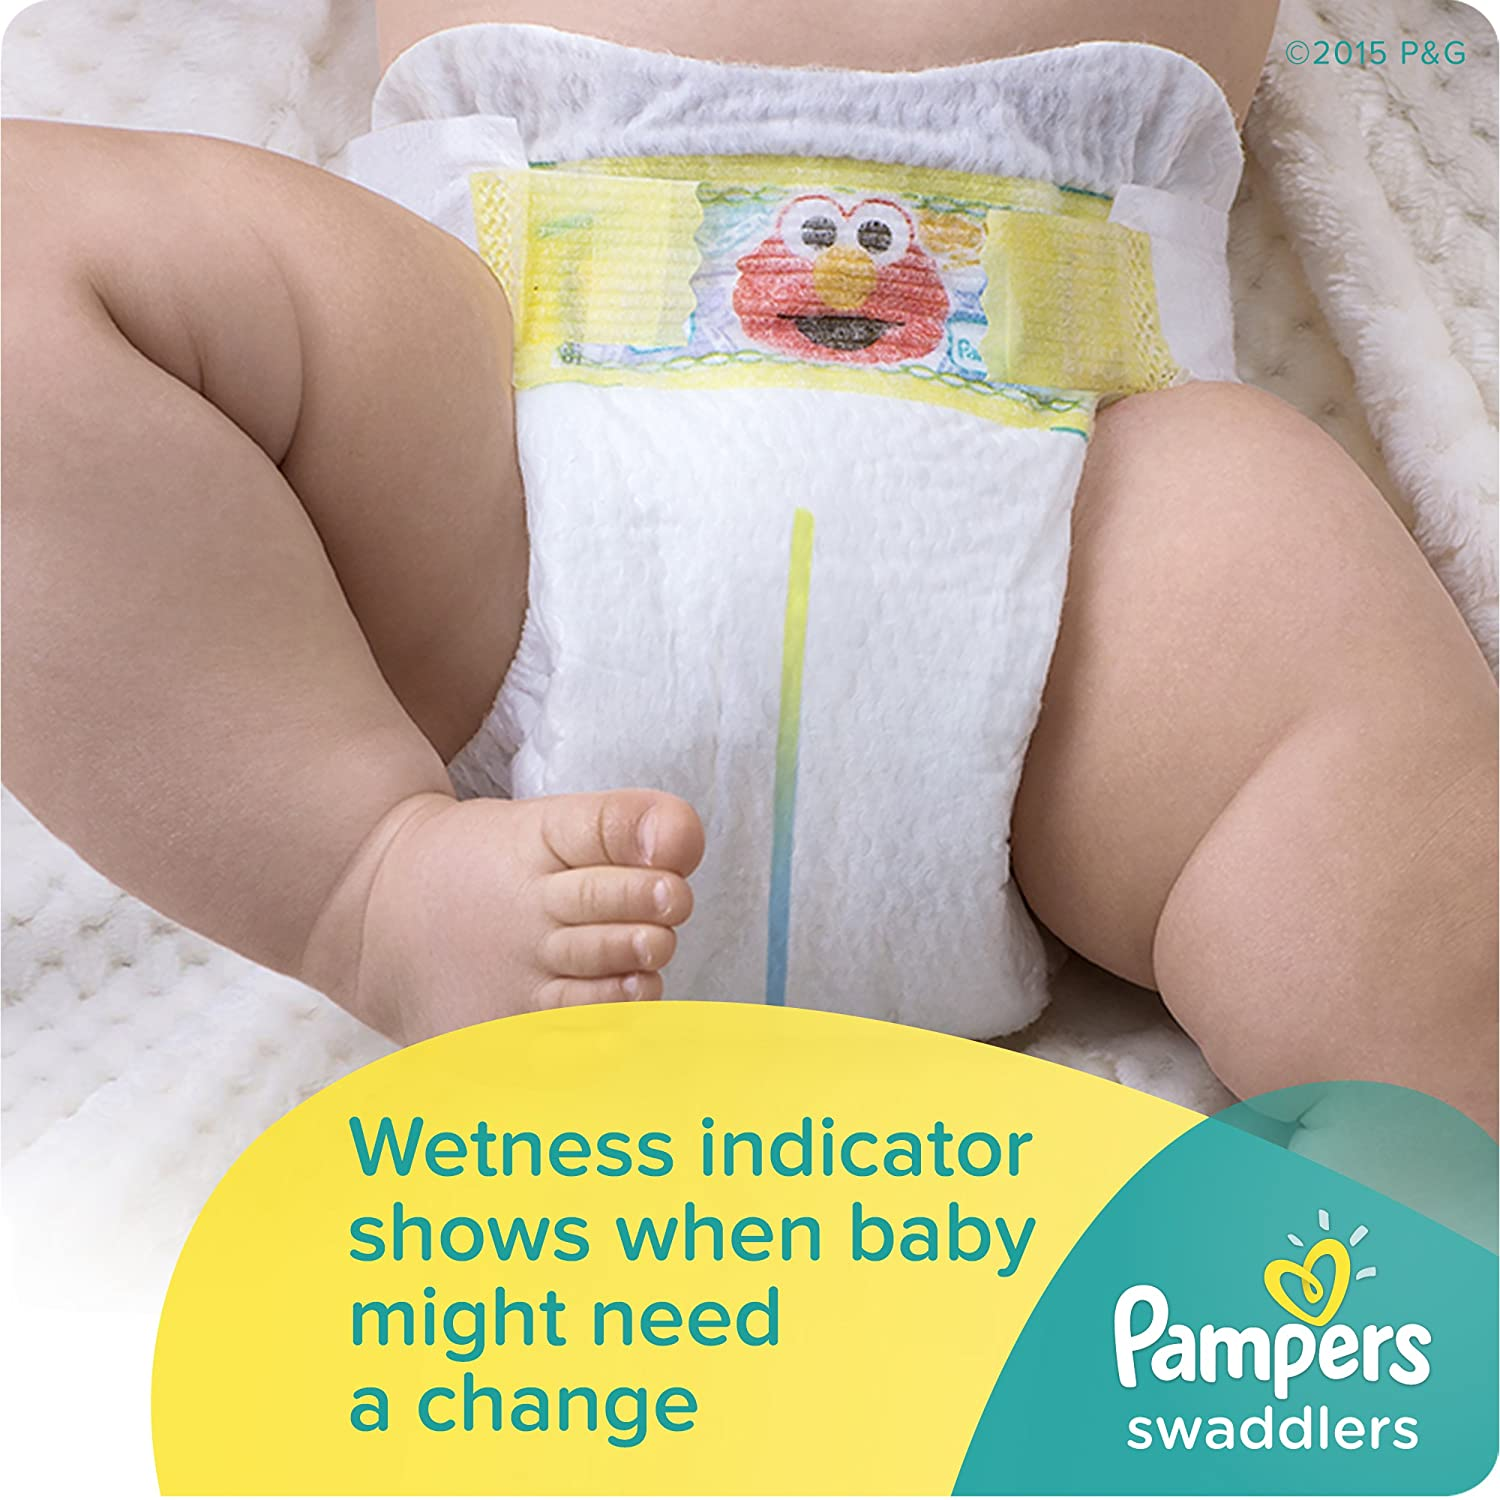 Amazon.com: Pampers Swaddlers Diapers Size 5, 124 Count: Health ...